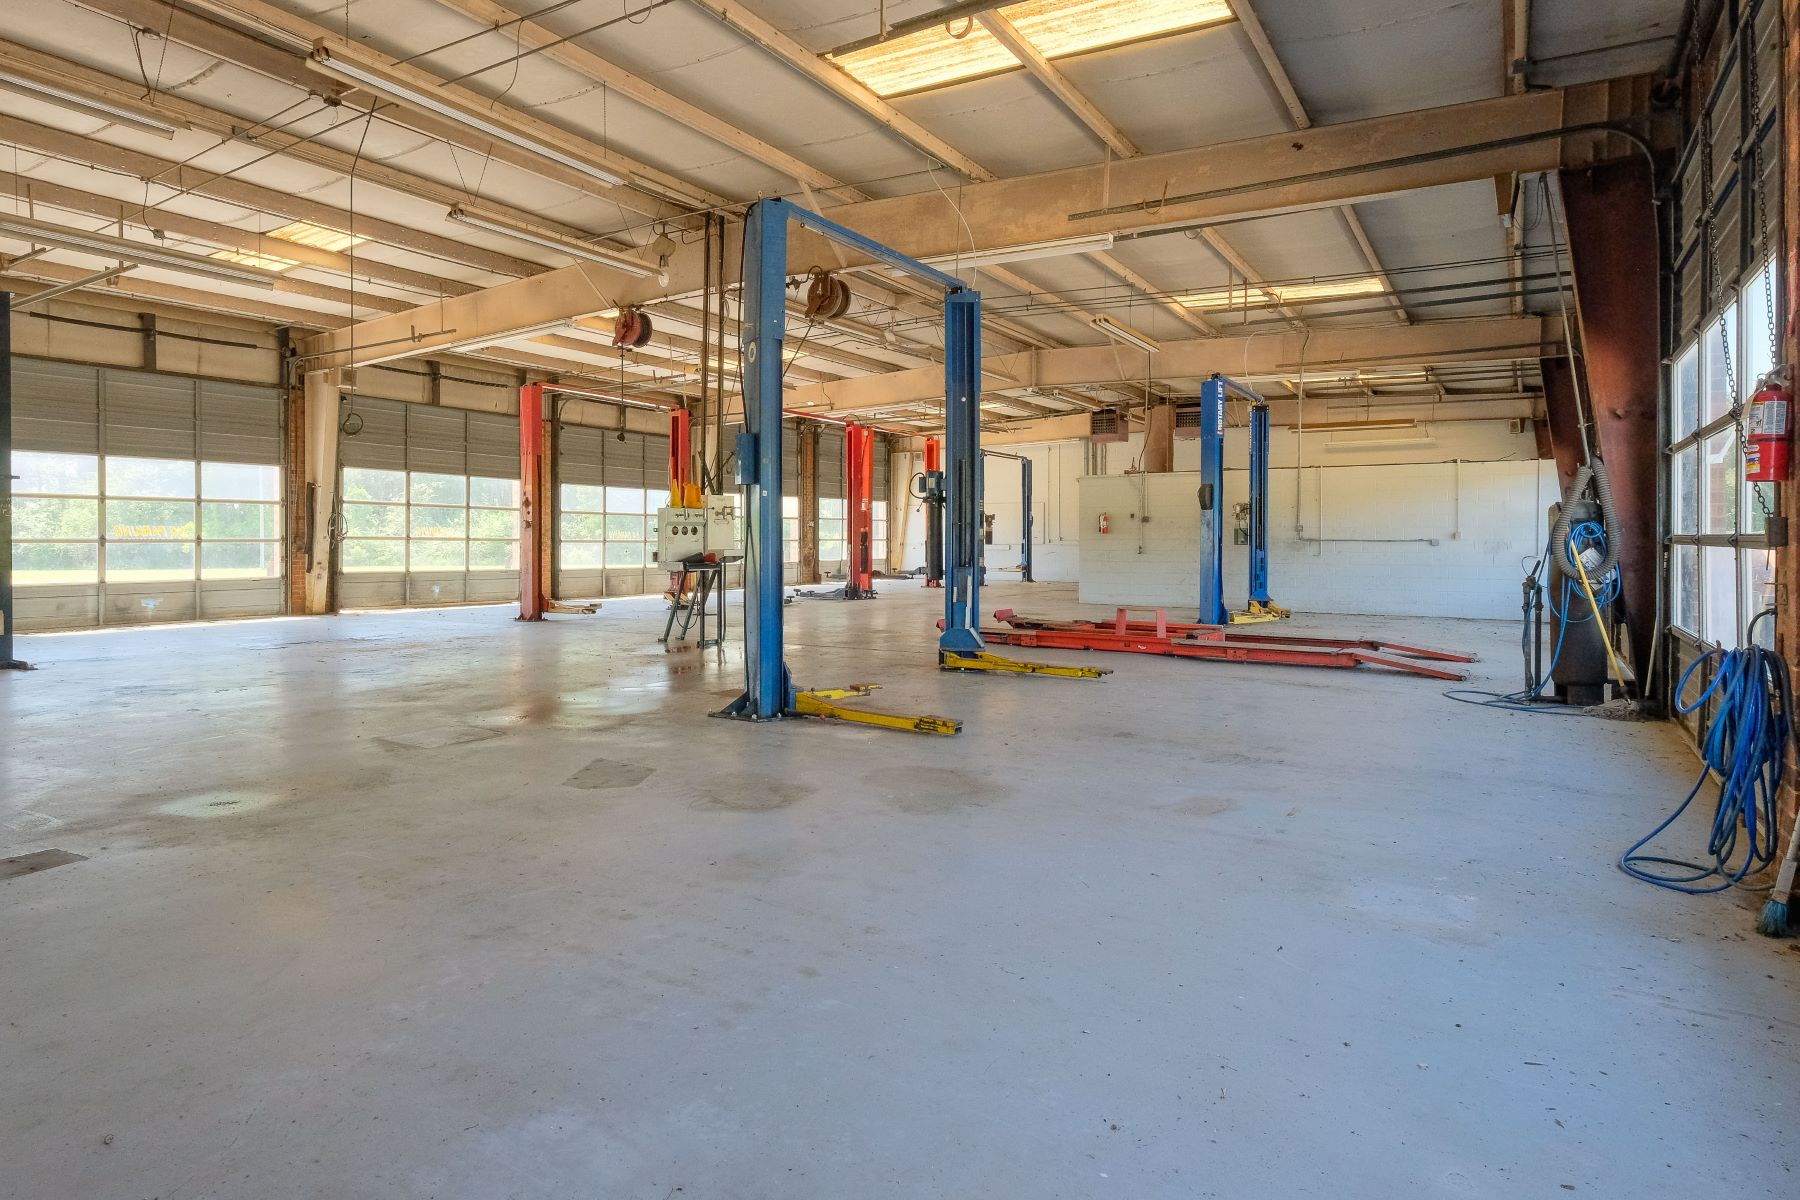 Additional photo for property listing at 18 Acres with Showroom and Service Building 1365 N. Broad St Edenton, North Carolina 27932 United States